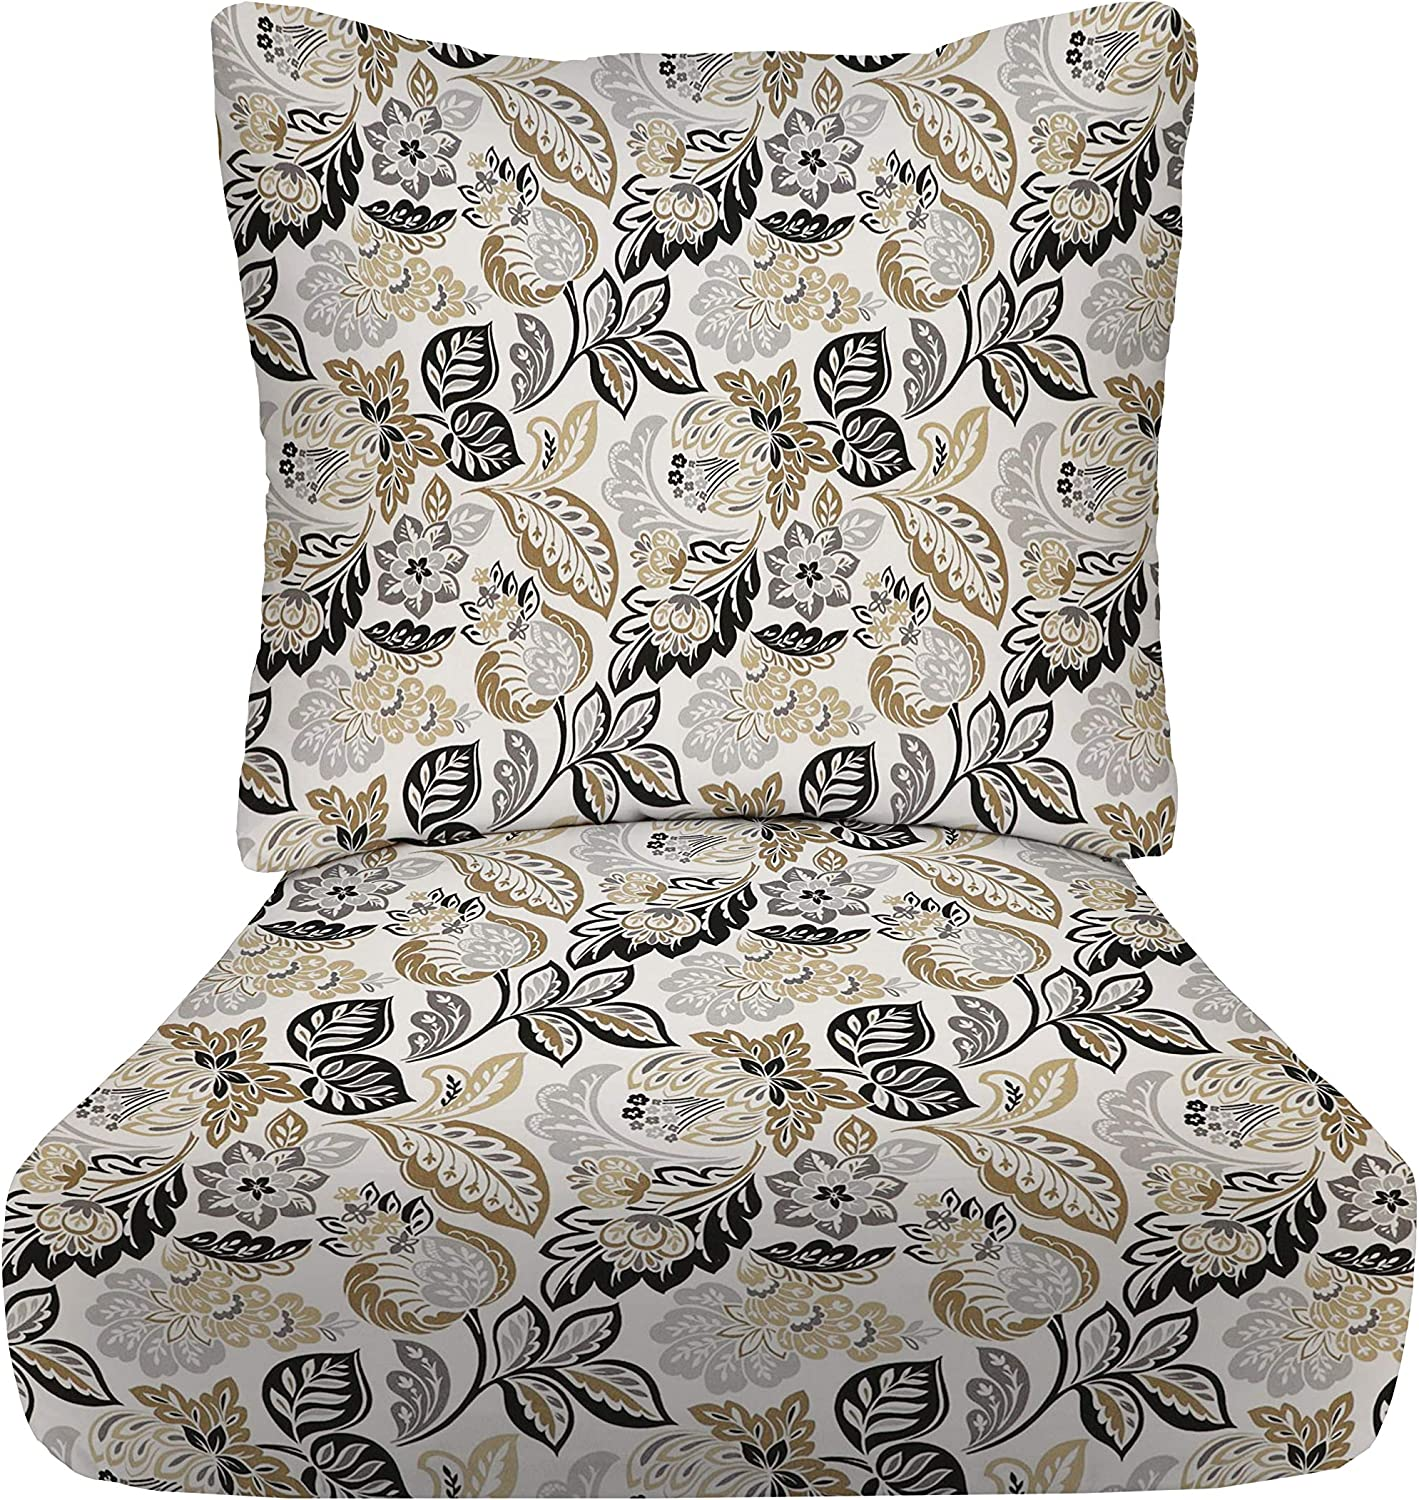 """RSH Décor Indoor Outdoor Deep Seating 24""""x x 24"""" Outlet free ☆ Free Shipping Set 5"""" Cushion"""